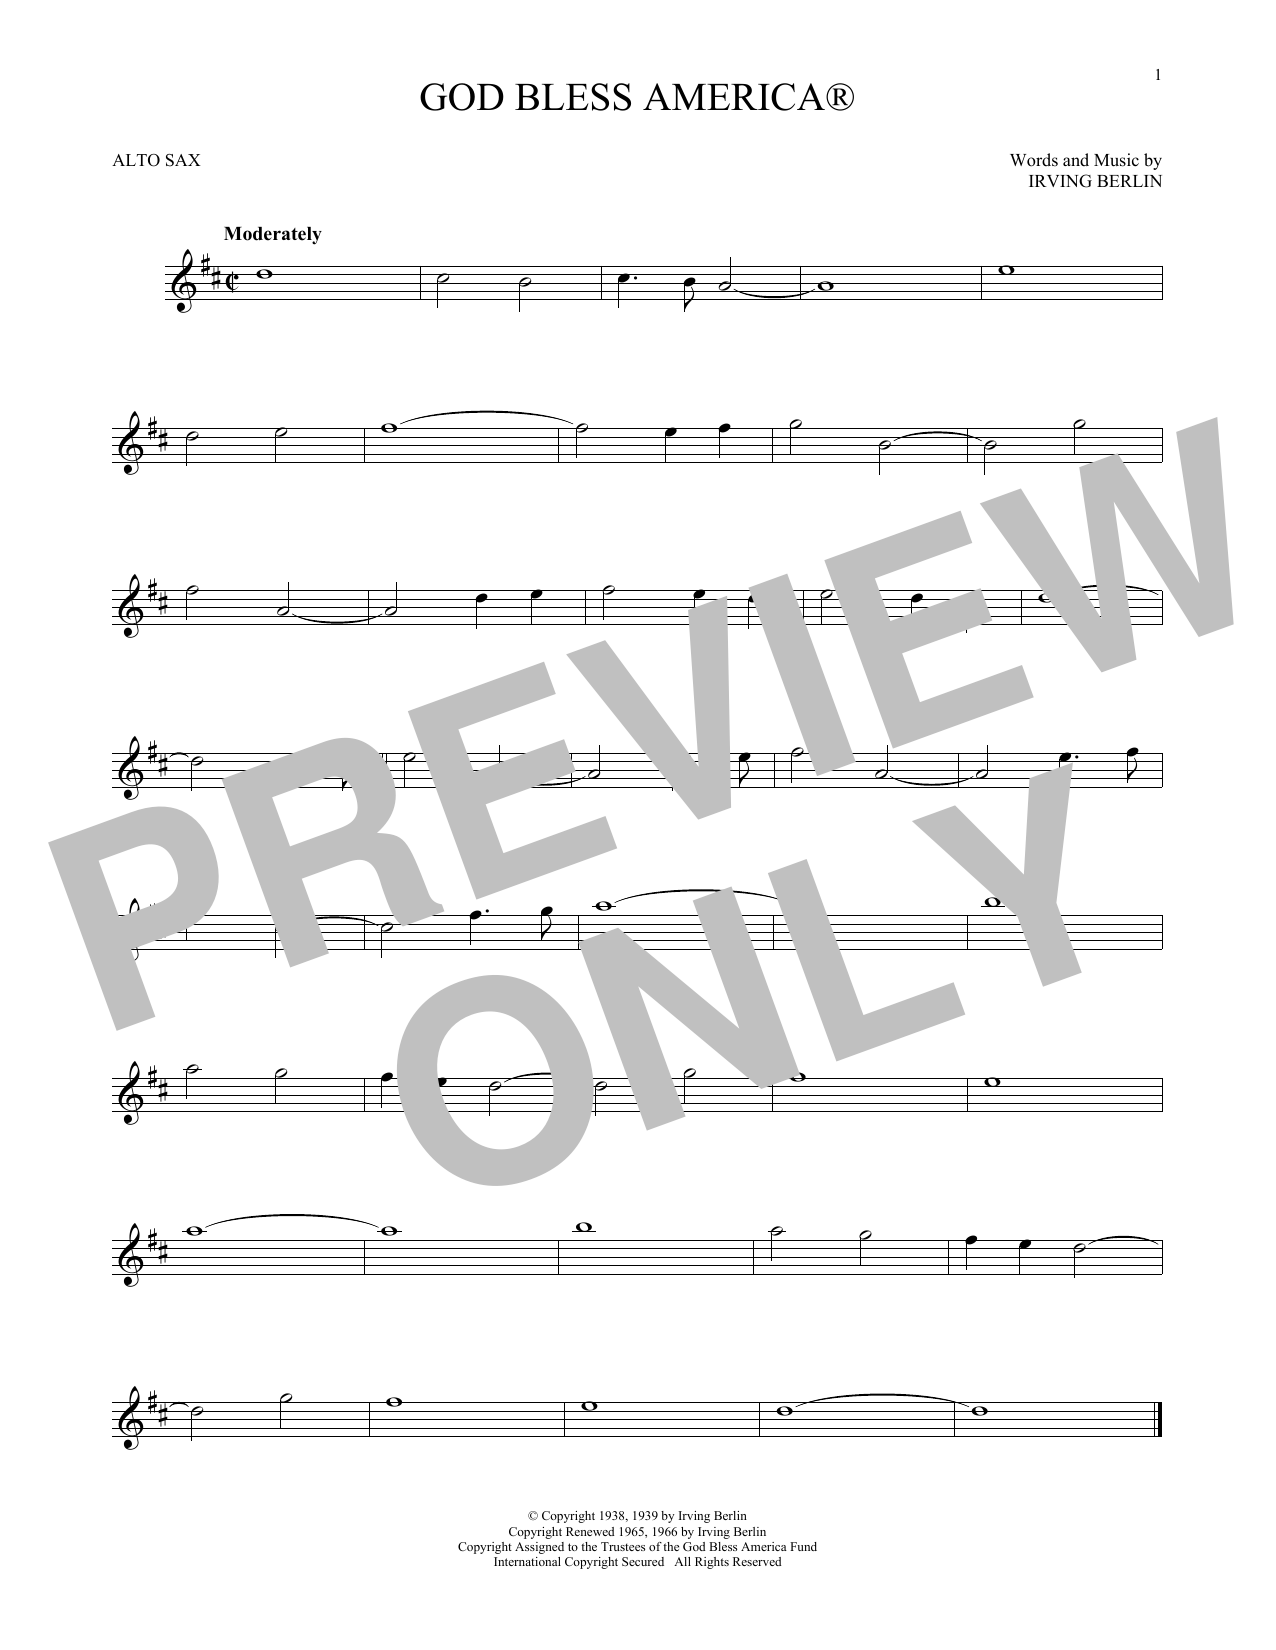 Irving Berlin 'God Bless America' Sheet Music Notes, Chords | Download  Printable Alto Sax Solo - SKU: 196442